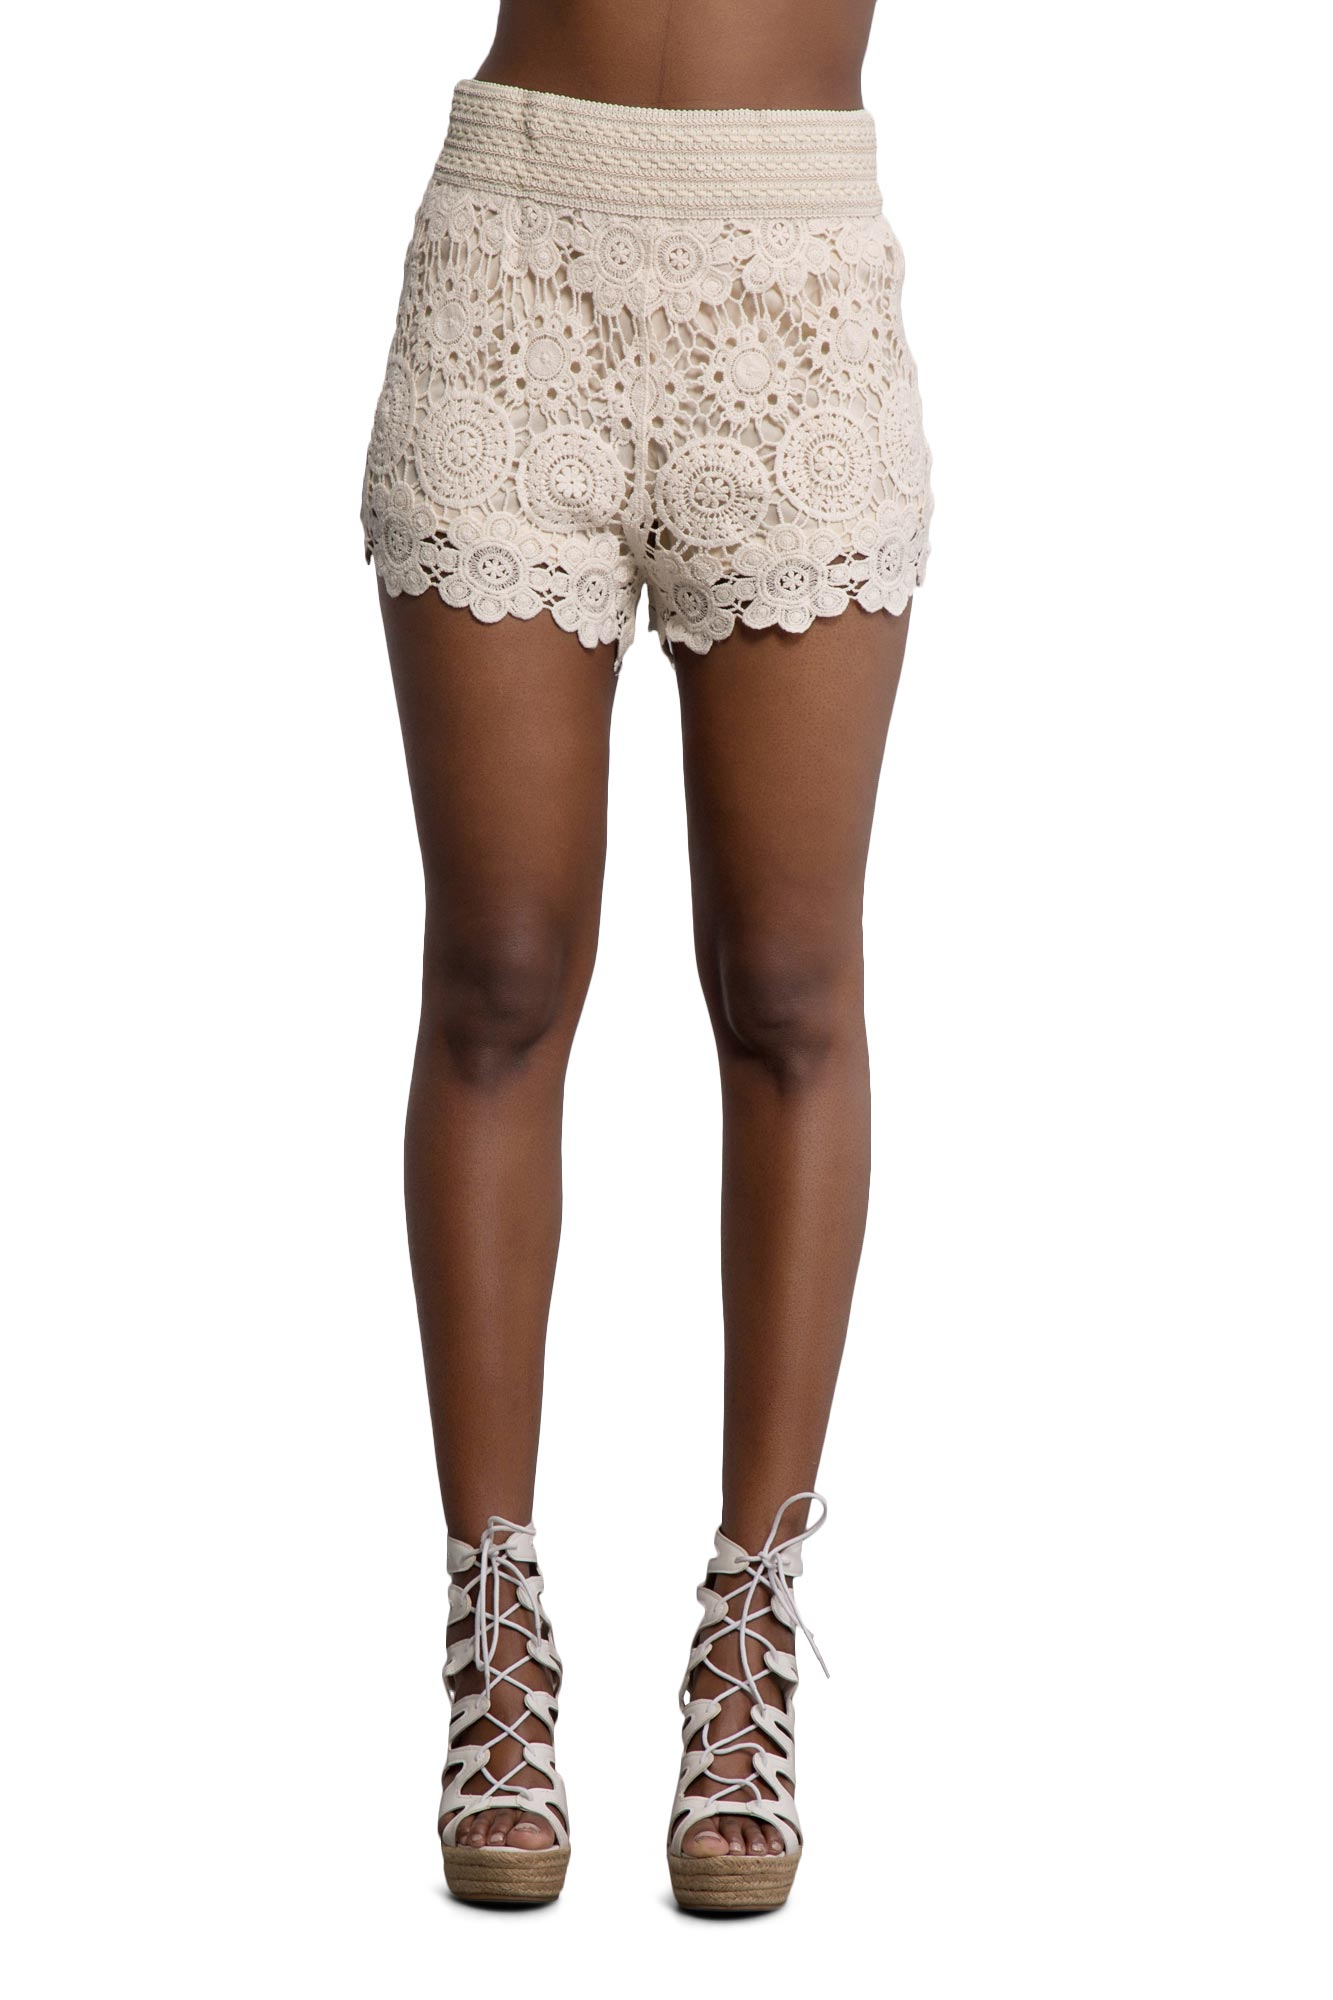 Find the latest and trendy styles of crochet shorts at ZAFUL. We are pleased you with the latest trends in high fashion crochet shorts.